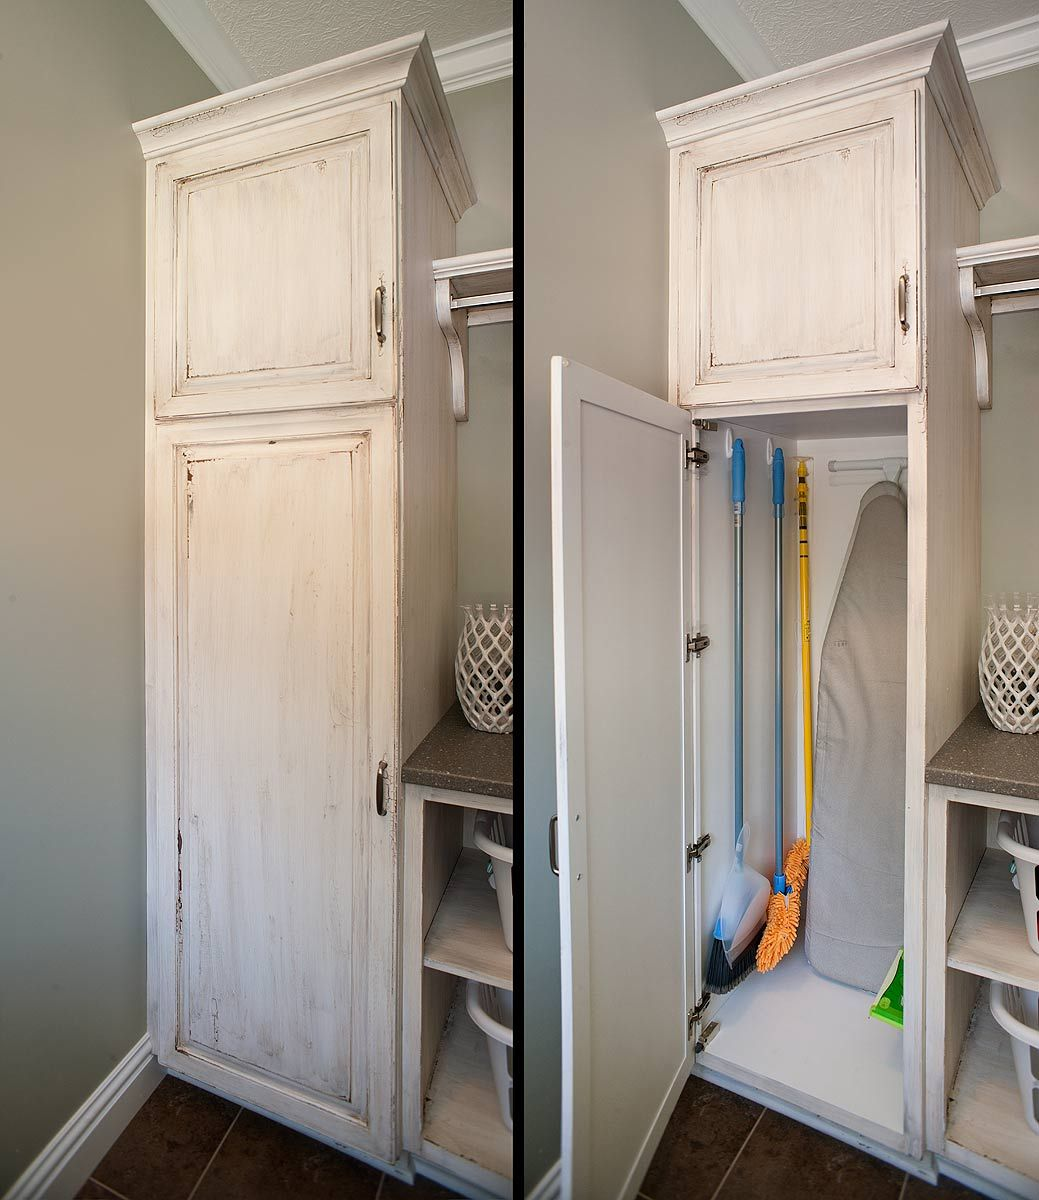 Best Laundry Room Location: Broom And Mop Holders Are Great For Eliminating The